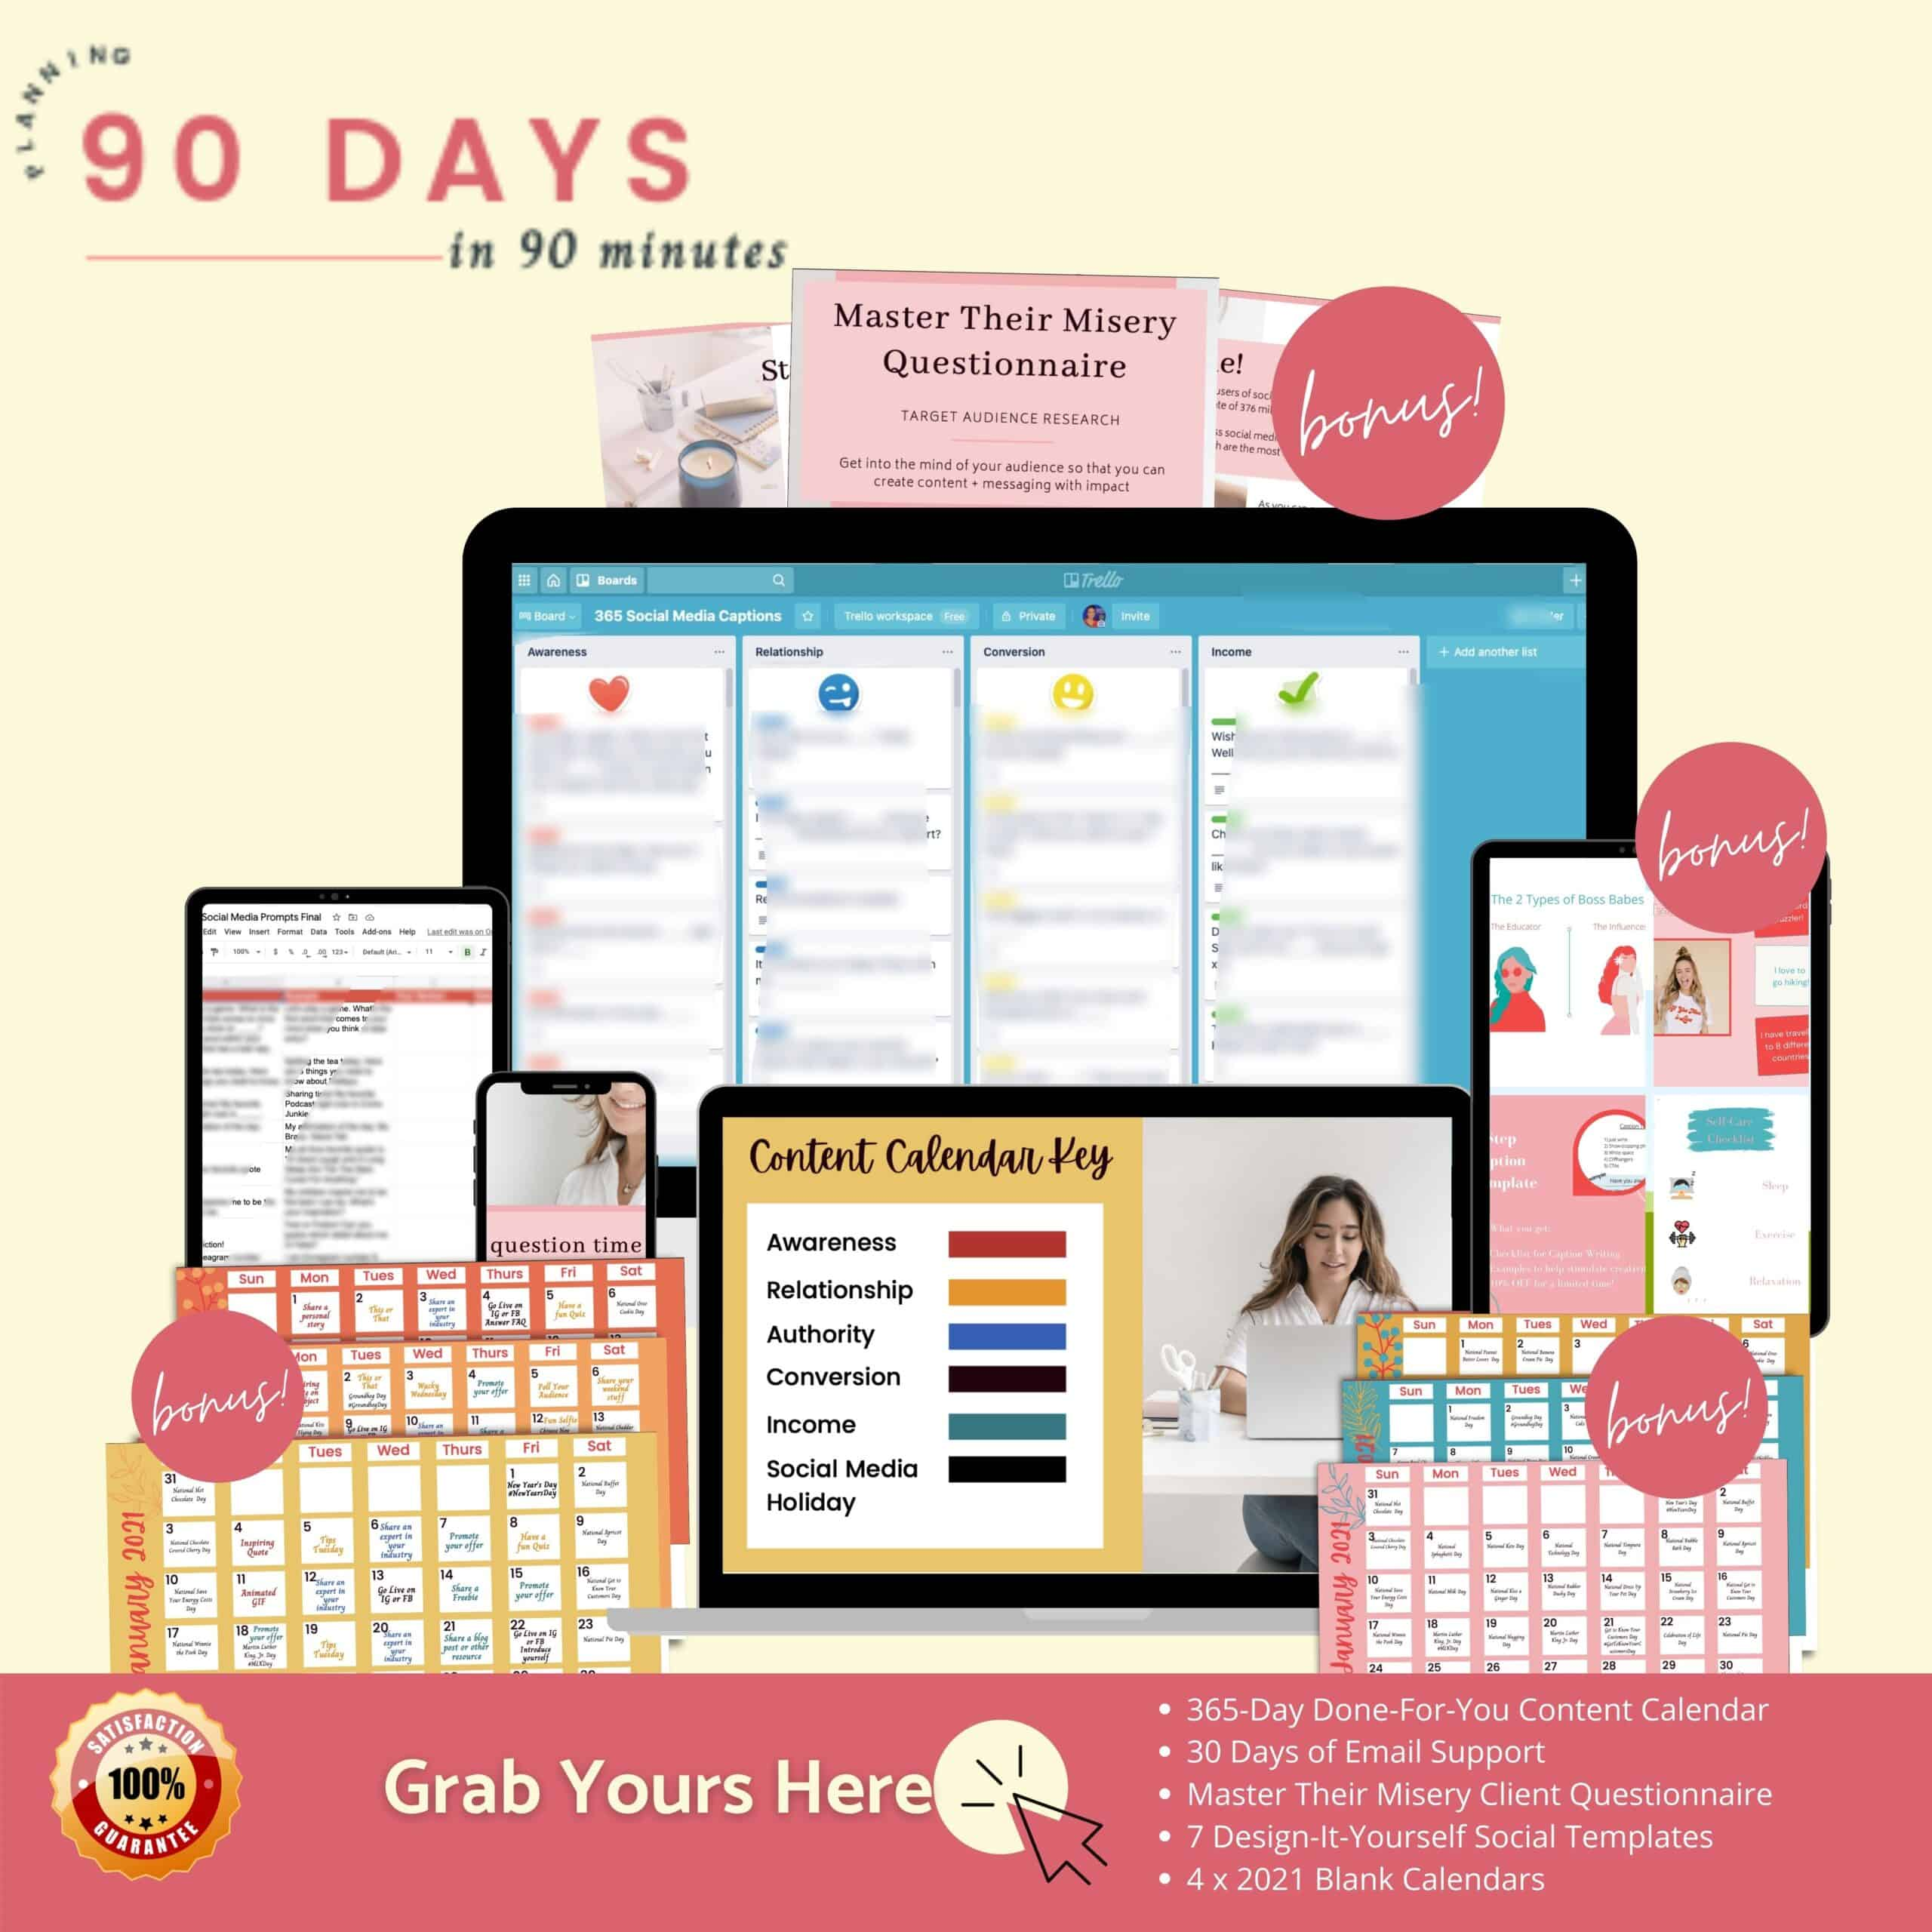 90 Days In 90 Minutes - promo with logo